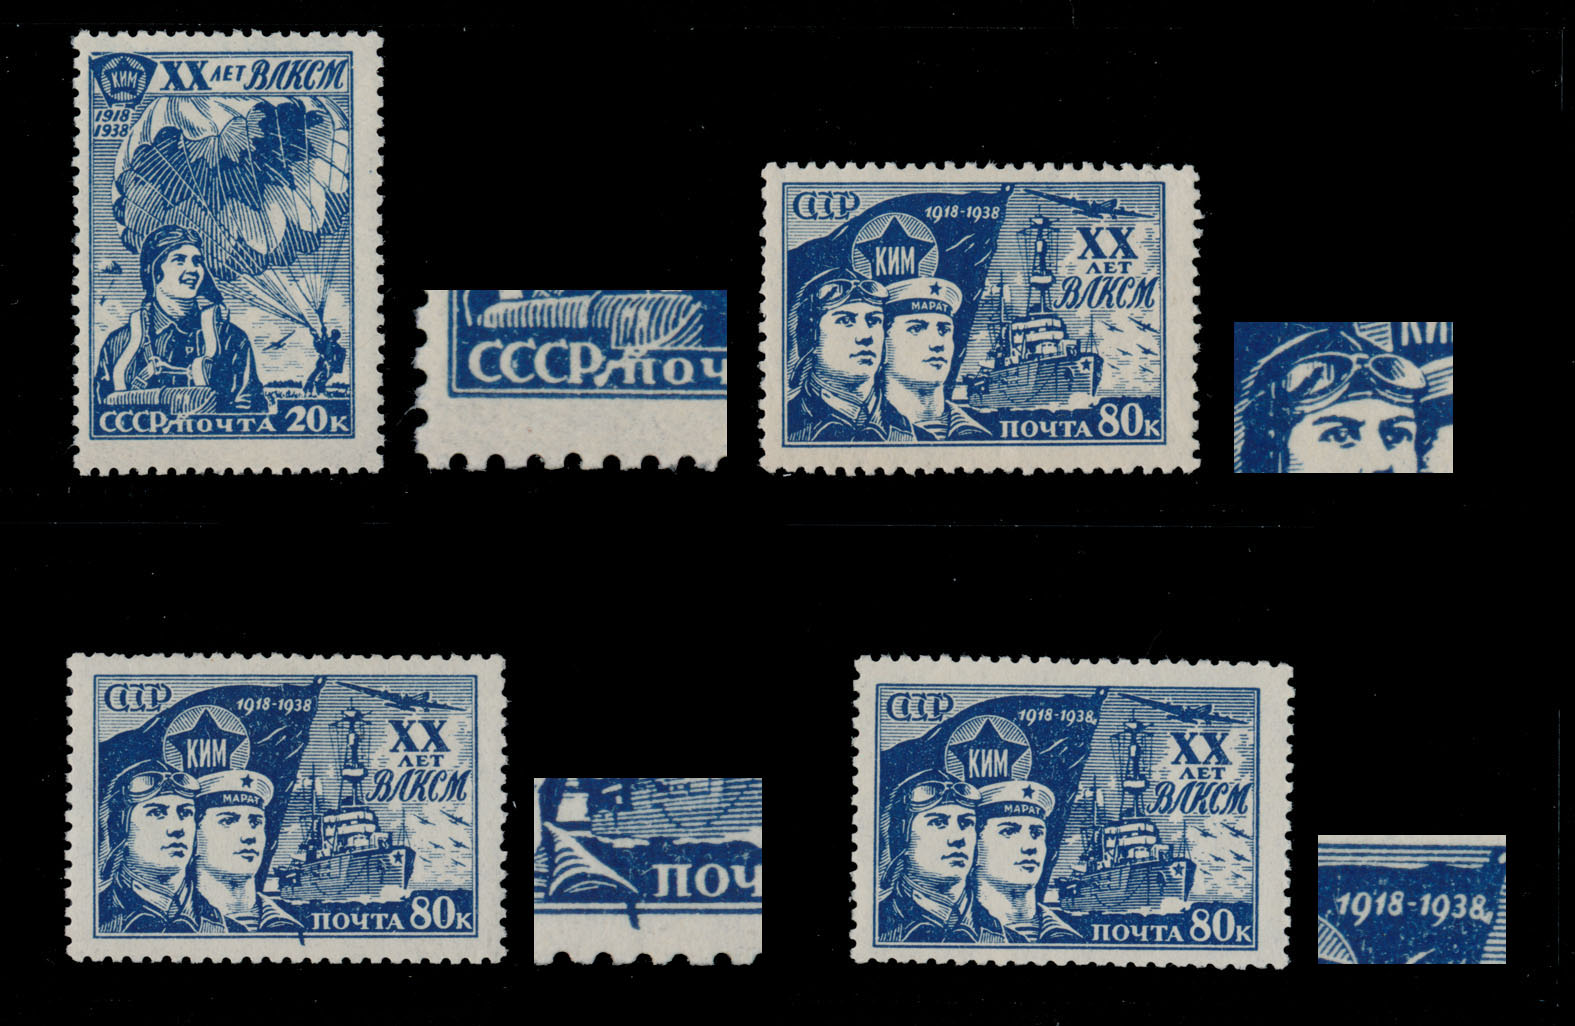 Stamp Auction - Soviet Union Stamps of 1918-1941 Pre-Great